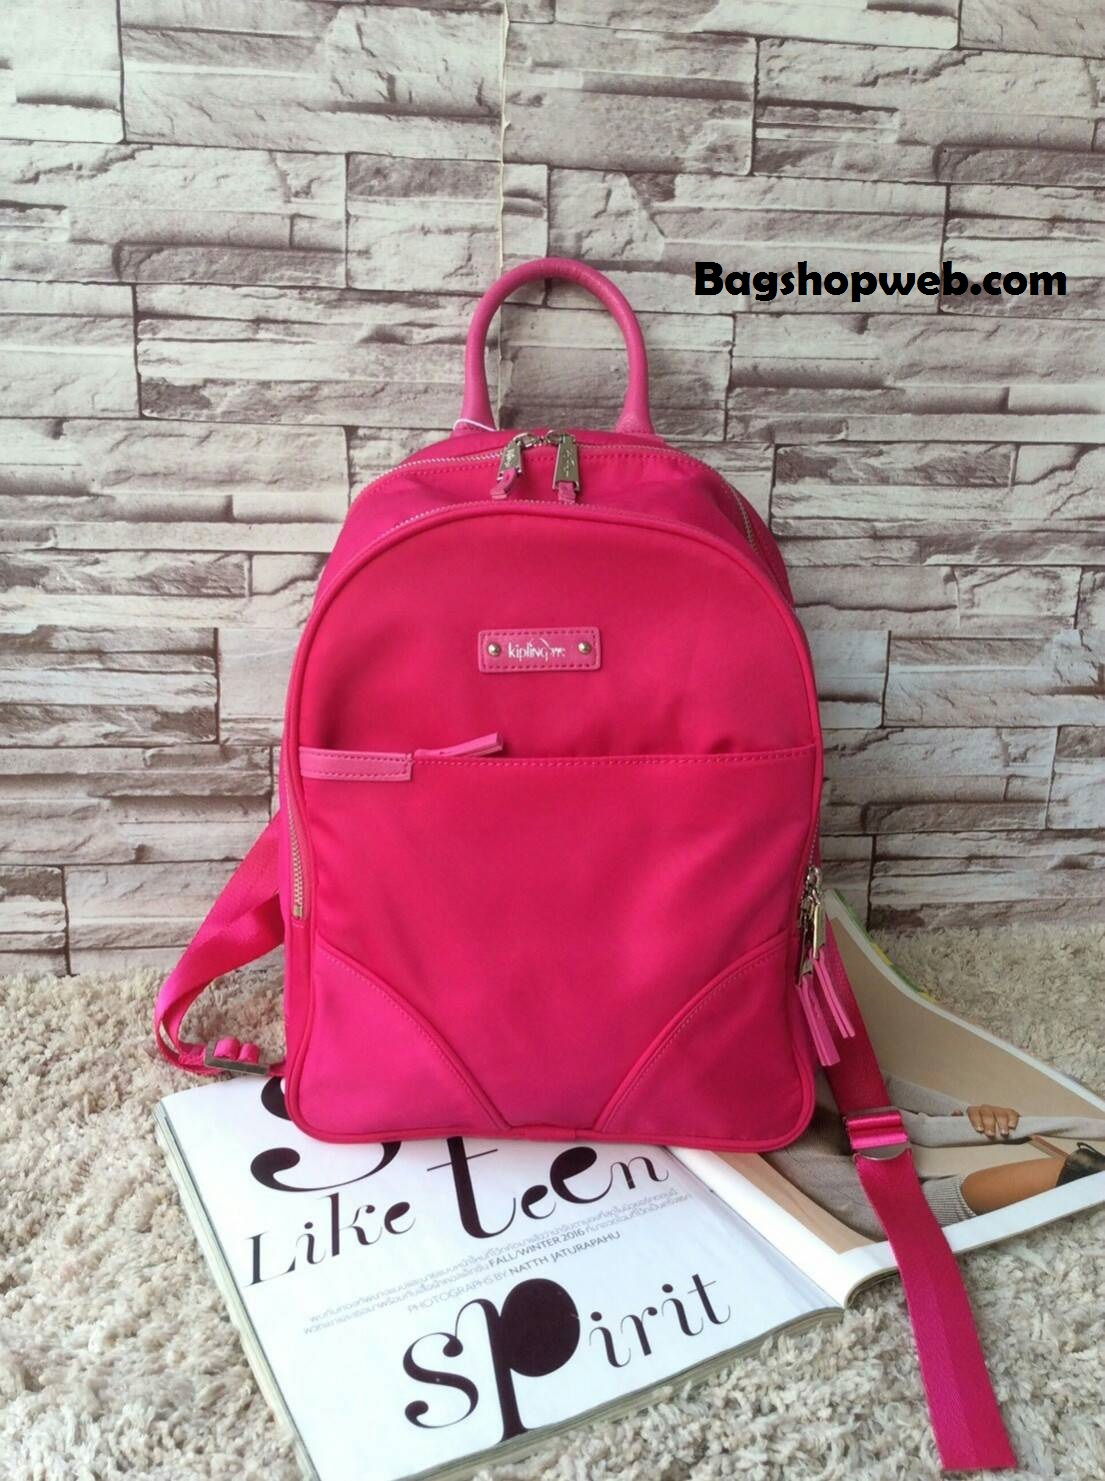 กระเป๋า Kipling Amory Medium Casual Shoulder Backpack Limited Edition สีชมพู 1,890 บาท Free Ems